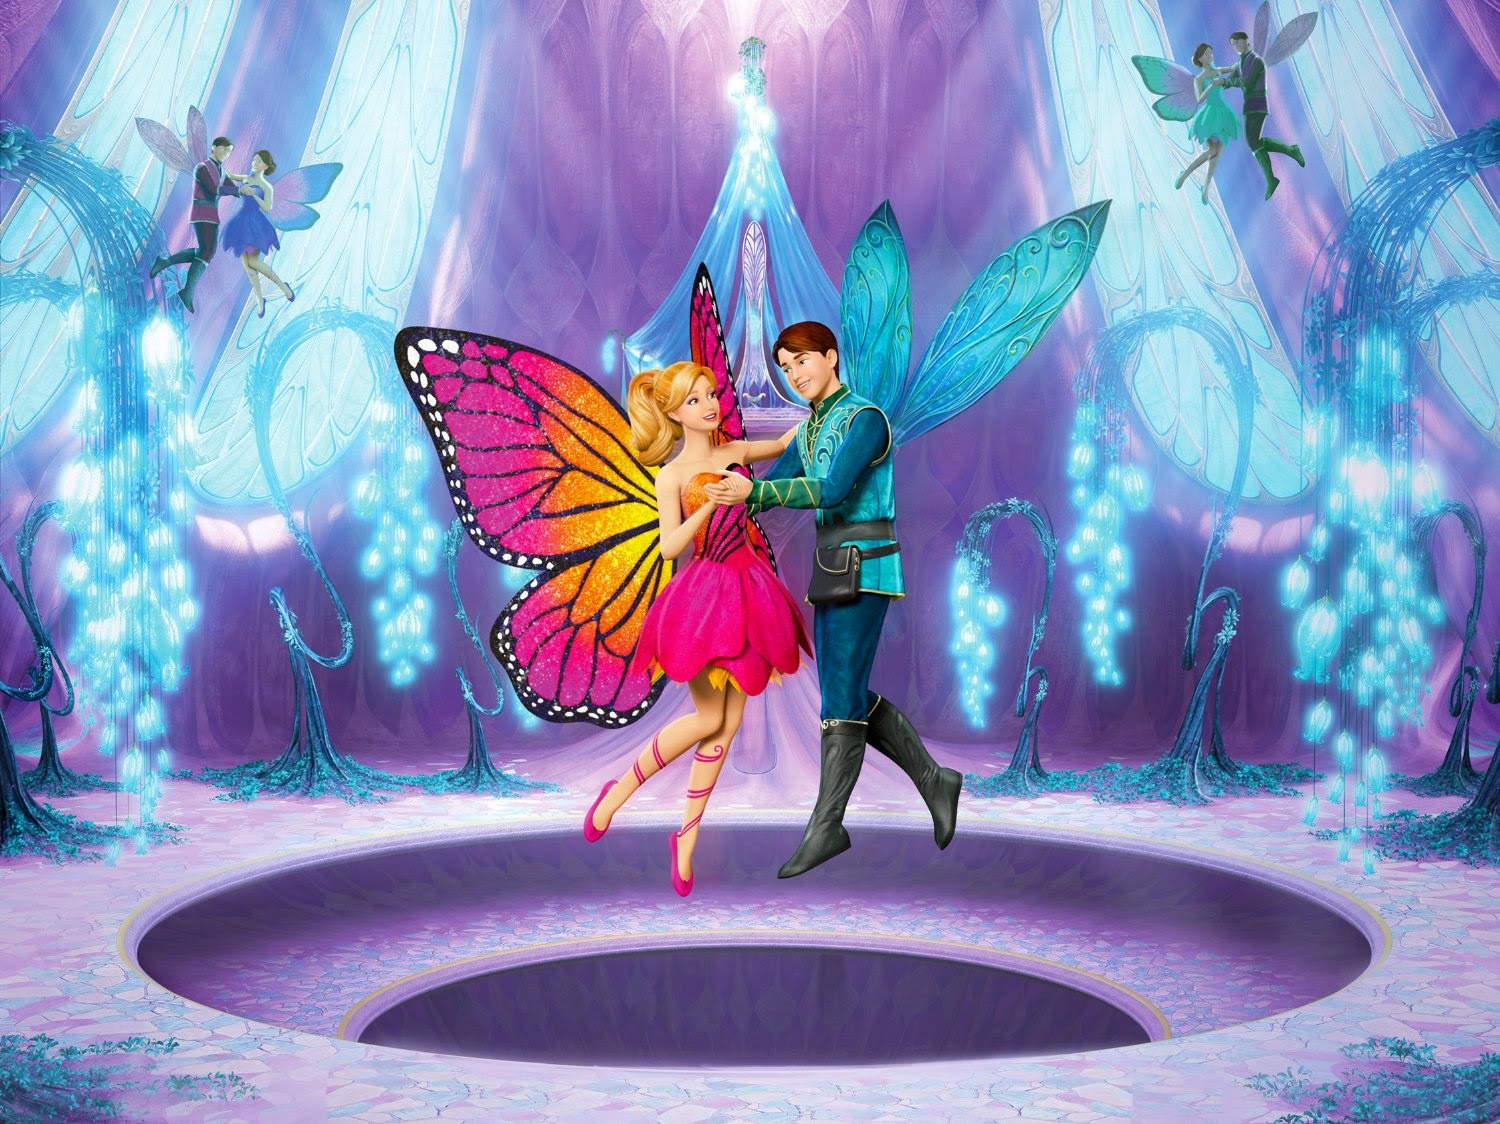 Barbie Mariposa The Fairy Princess Wallpapers High Quality